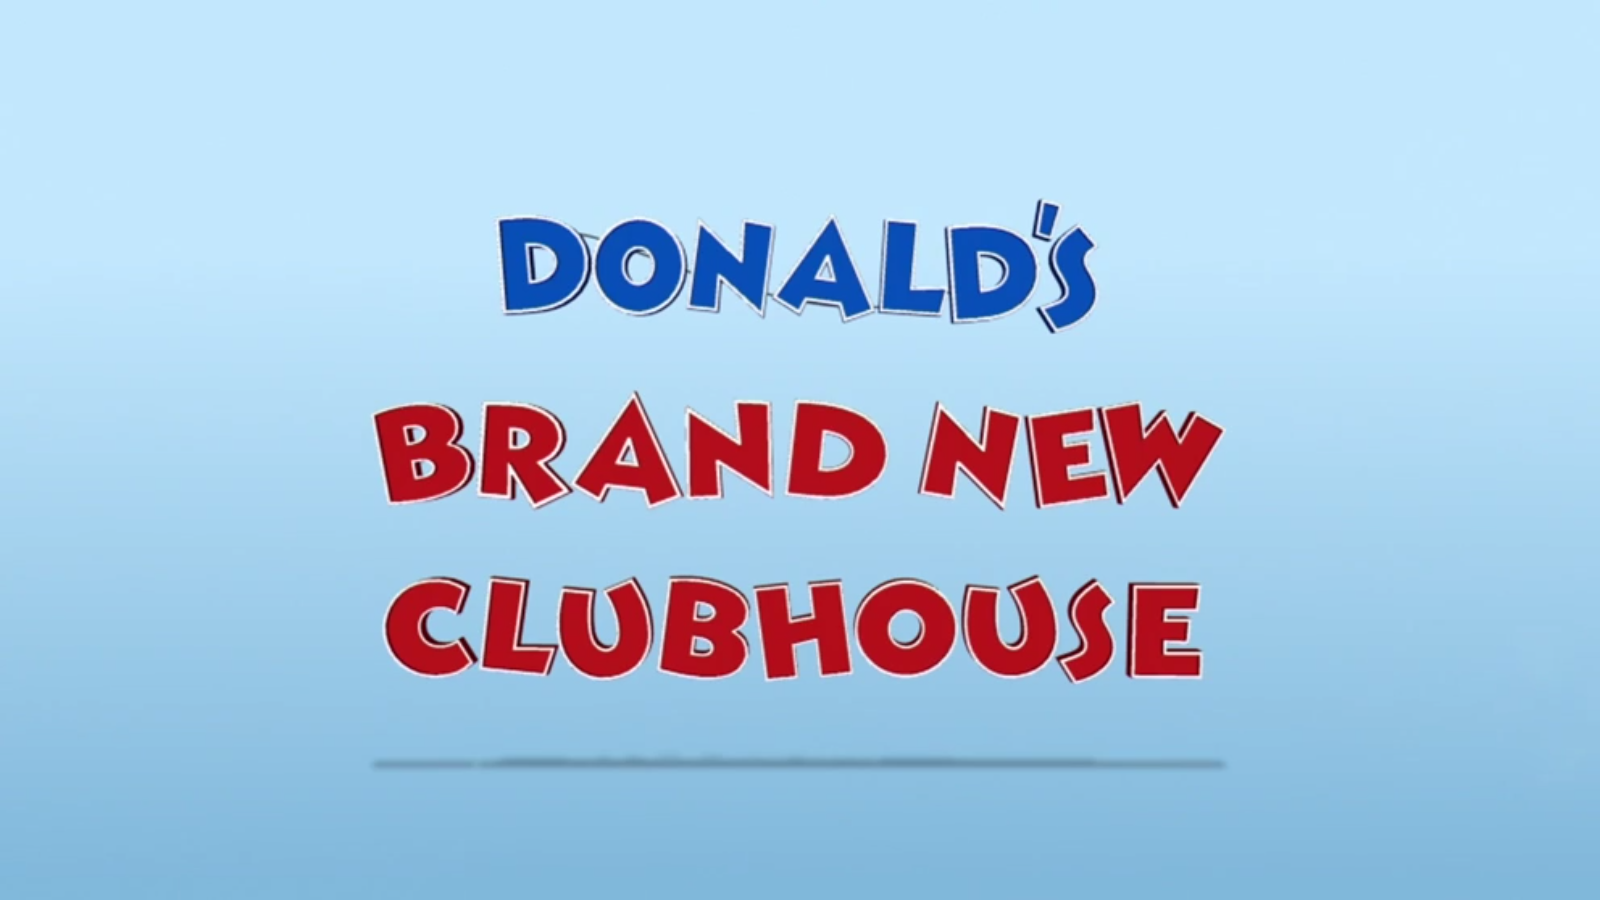 Donald's Brand New Clubhouse